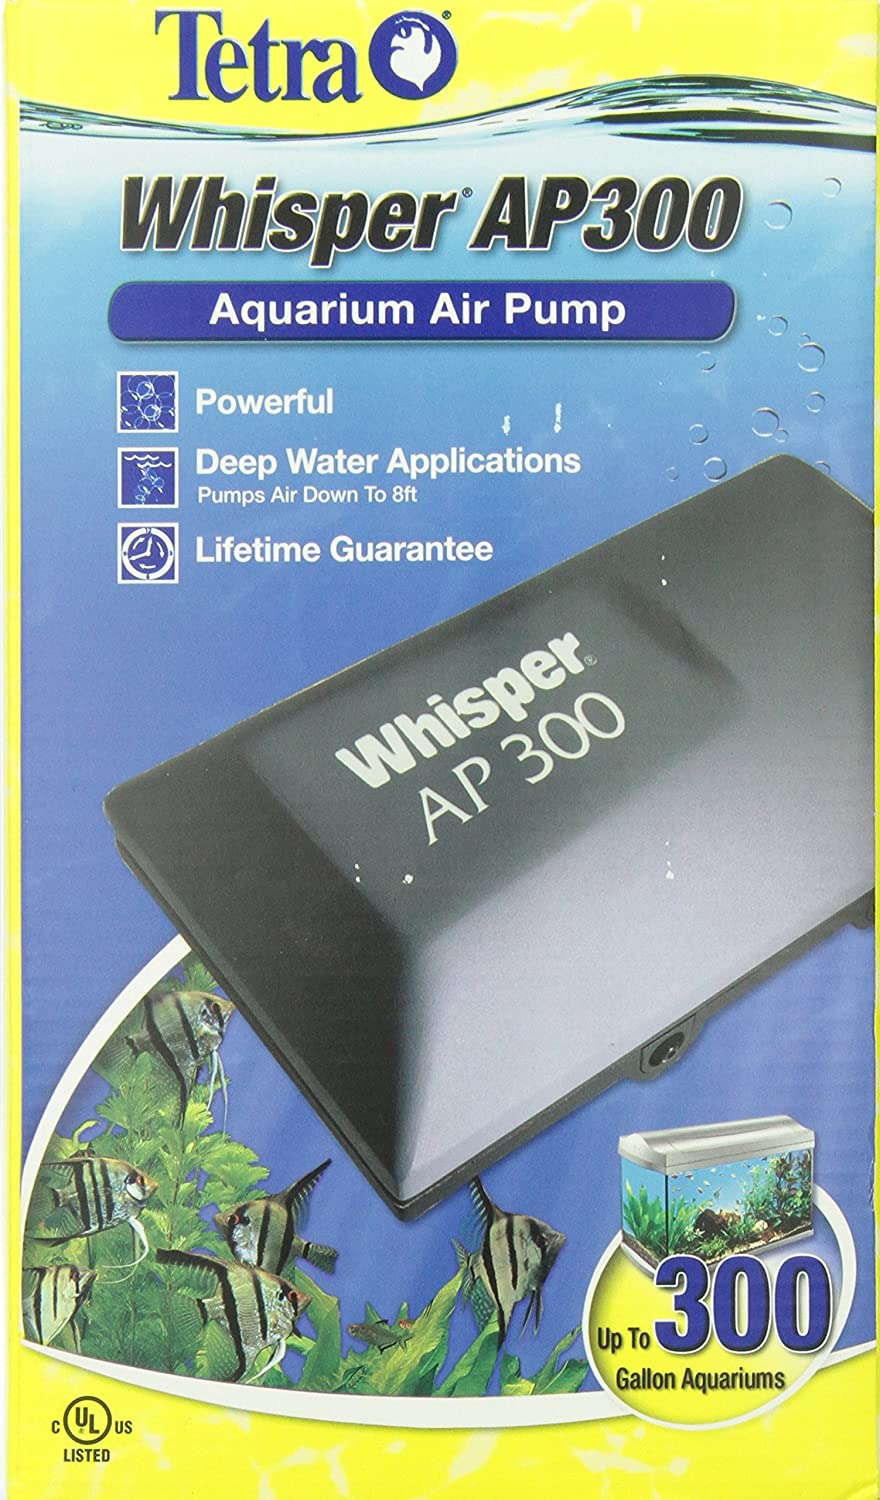 91Zm5Fak 4L._SL1500_ amazon com tetra 26075 whisper aquarium air pump ap300, up to  at mifinder.co